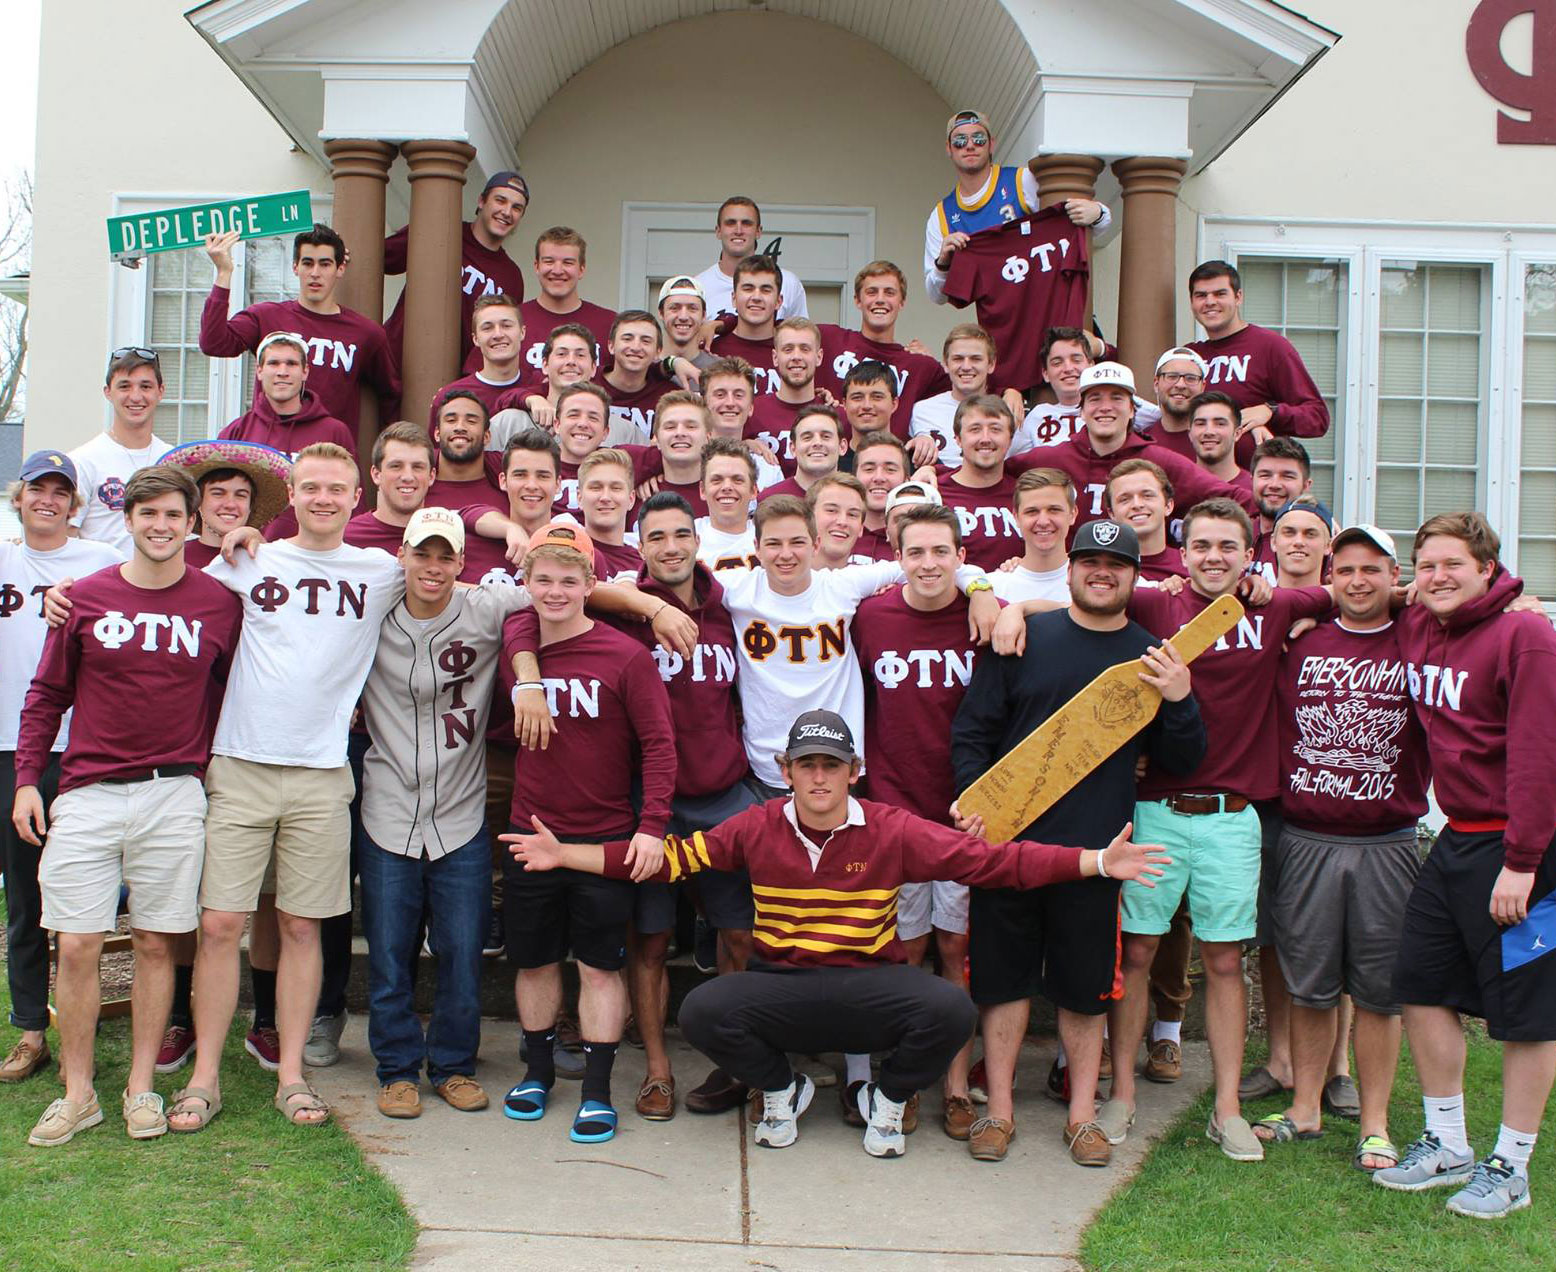 The men of the Phi Tau Nu fraternity